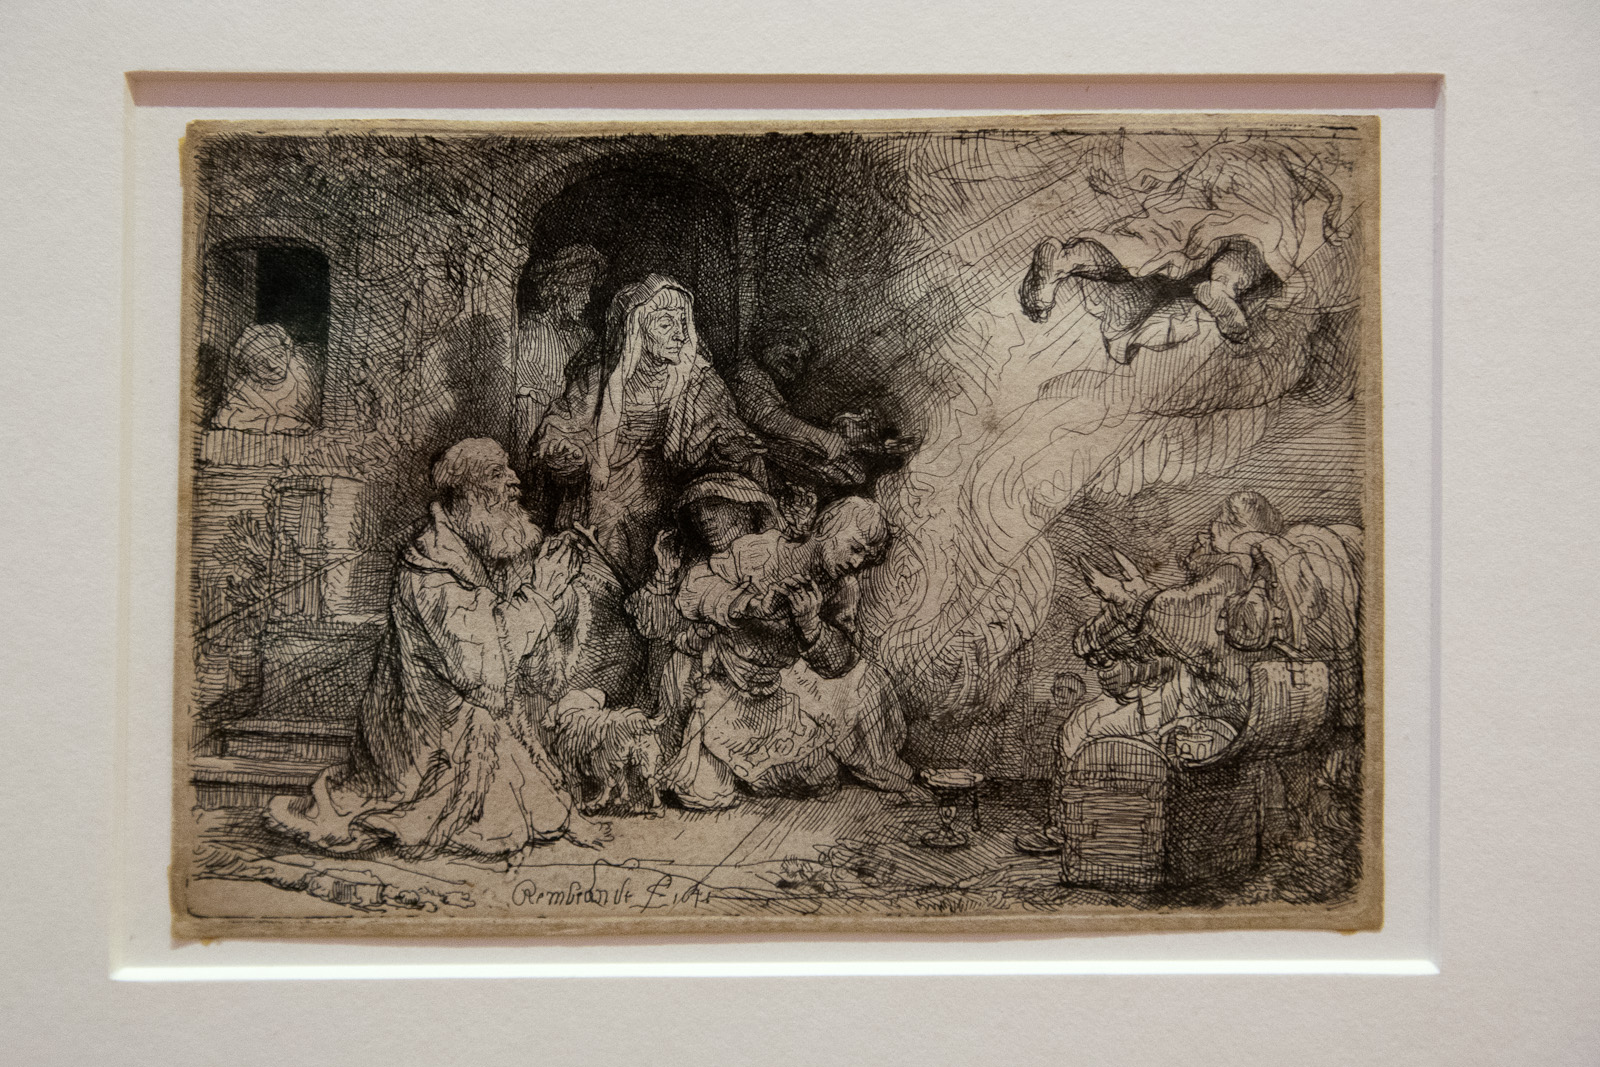 Rembrandt Exhibition Shell : Life in the age of rembrandtu d at the columbus museum of art from